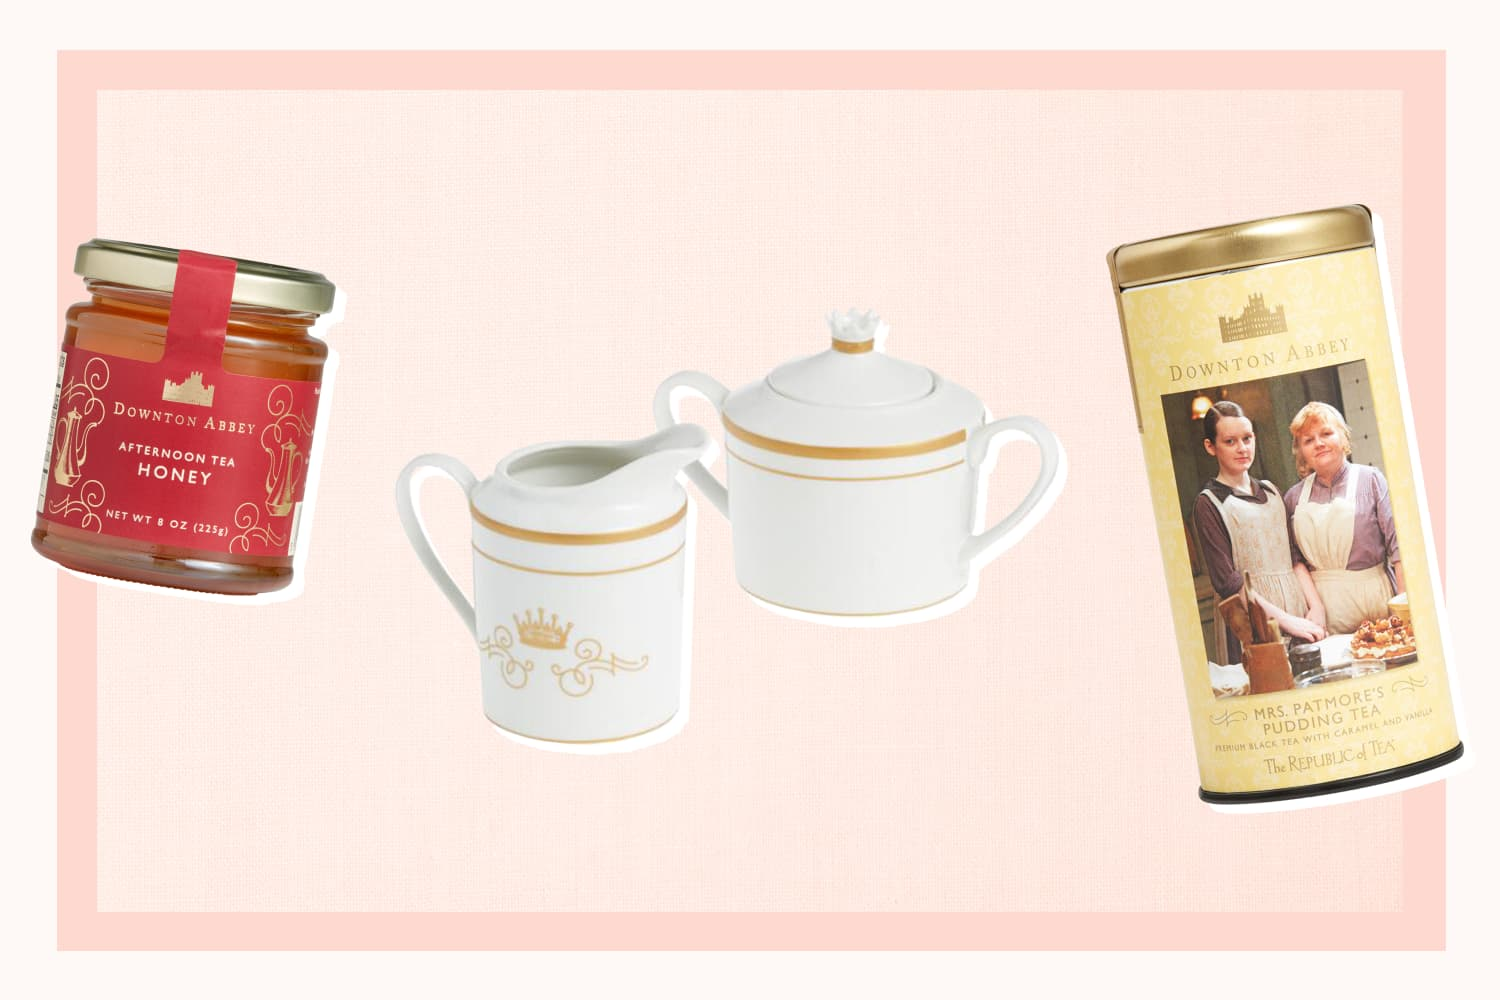 Here's the Tea: World Market Dropped a Tasty Downton Abbey Collection, Just in Time for the Movie